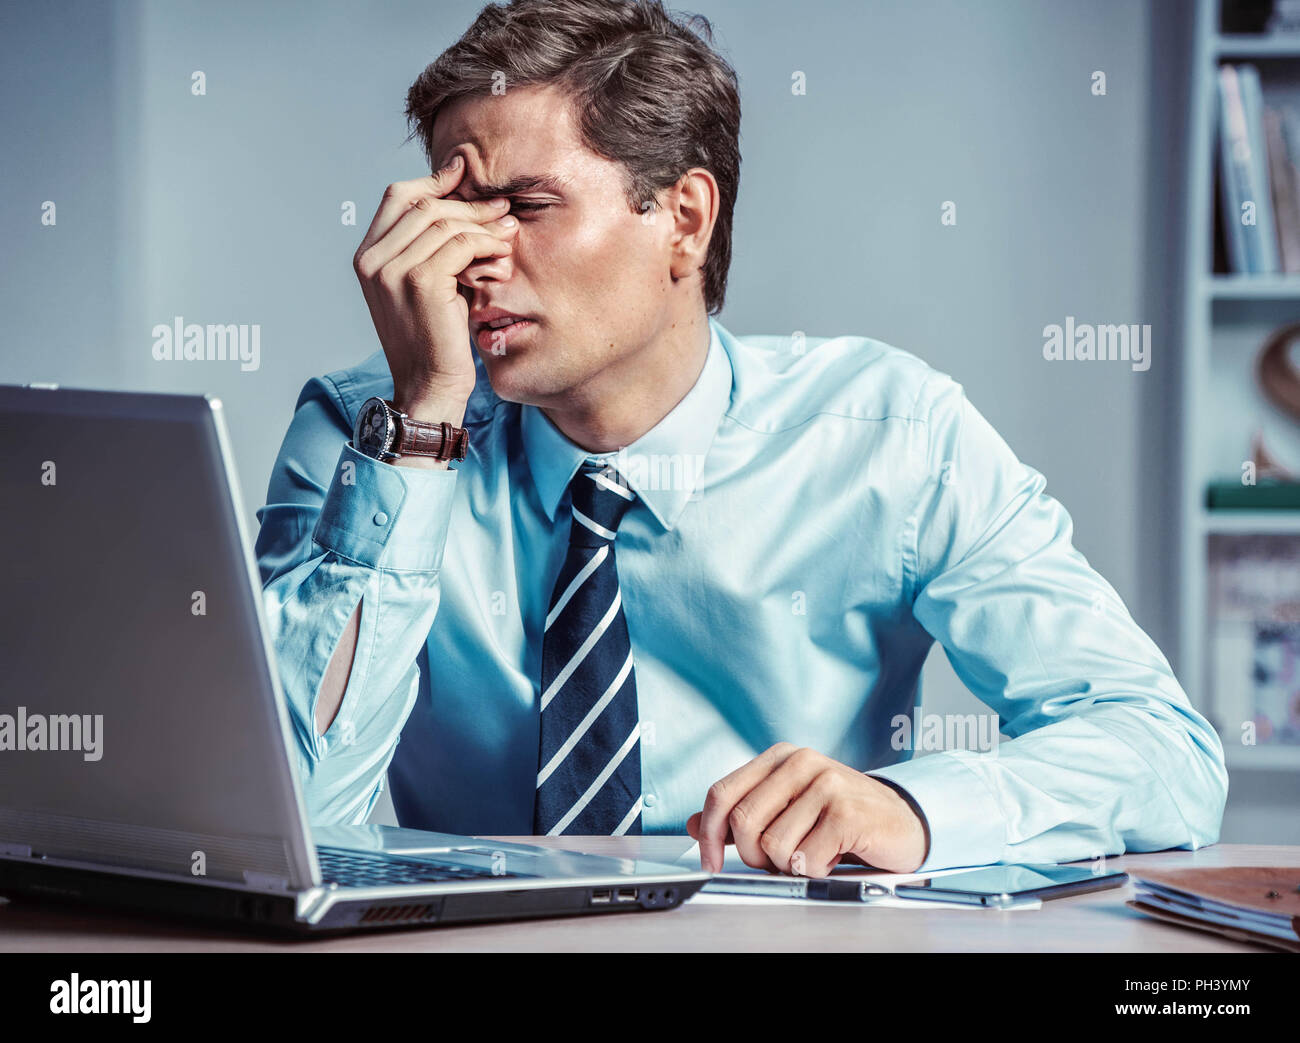 Young office man with pain in his head or an eye. Photo of man suffering from stress or a headache grimacing in pain. Business concept - Stock Image